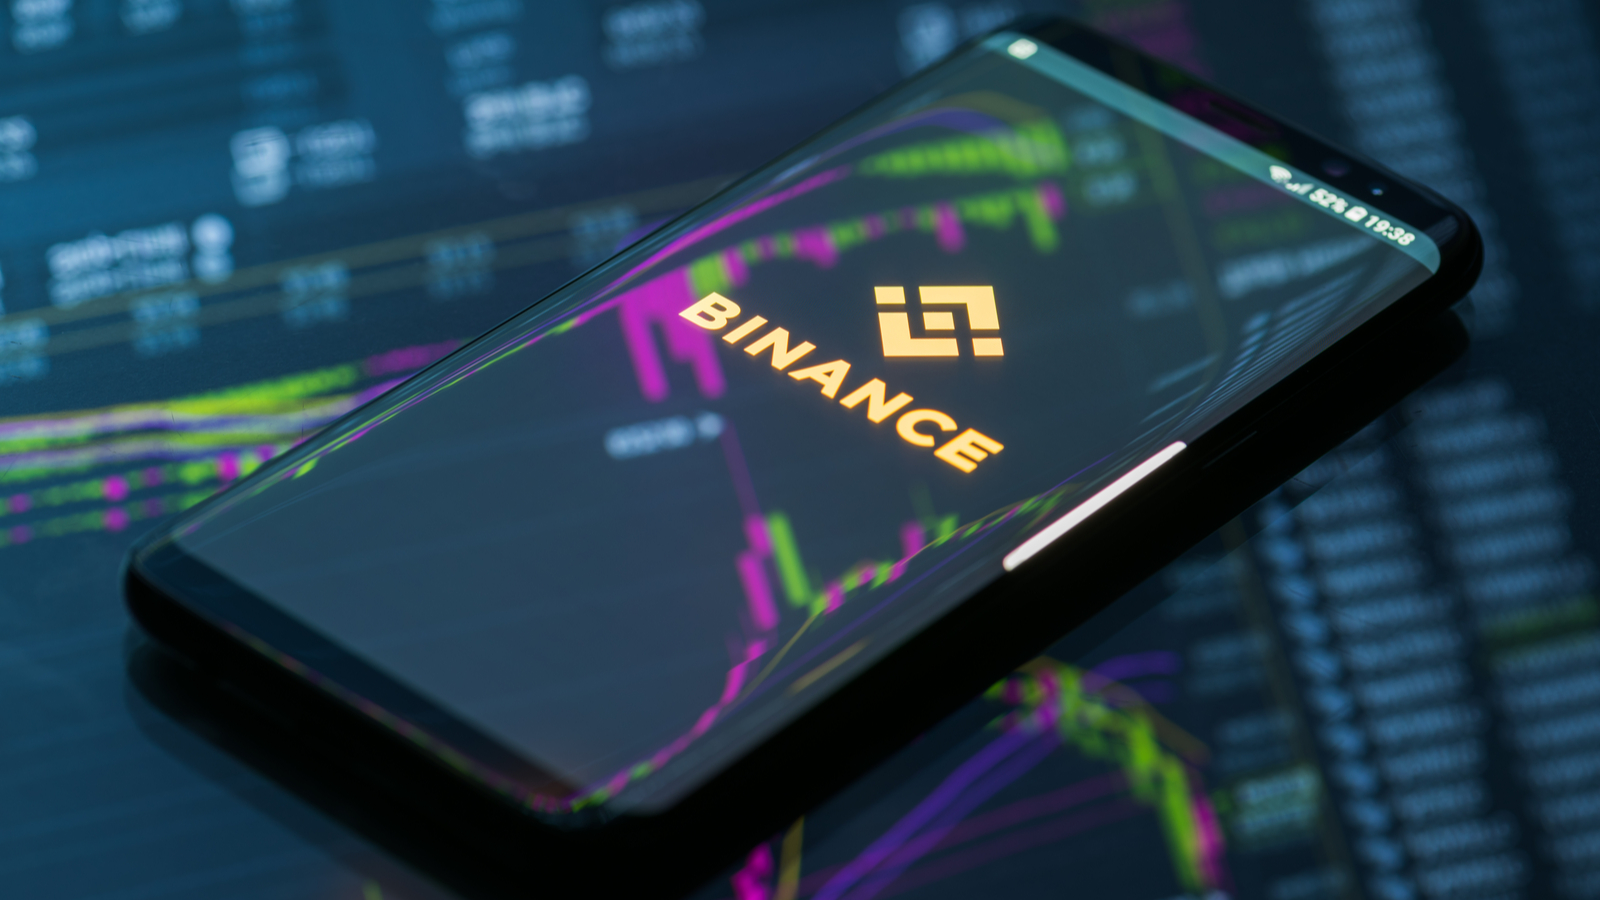 Binance mobile app on running on smartphone